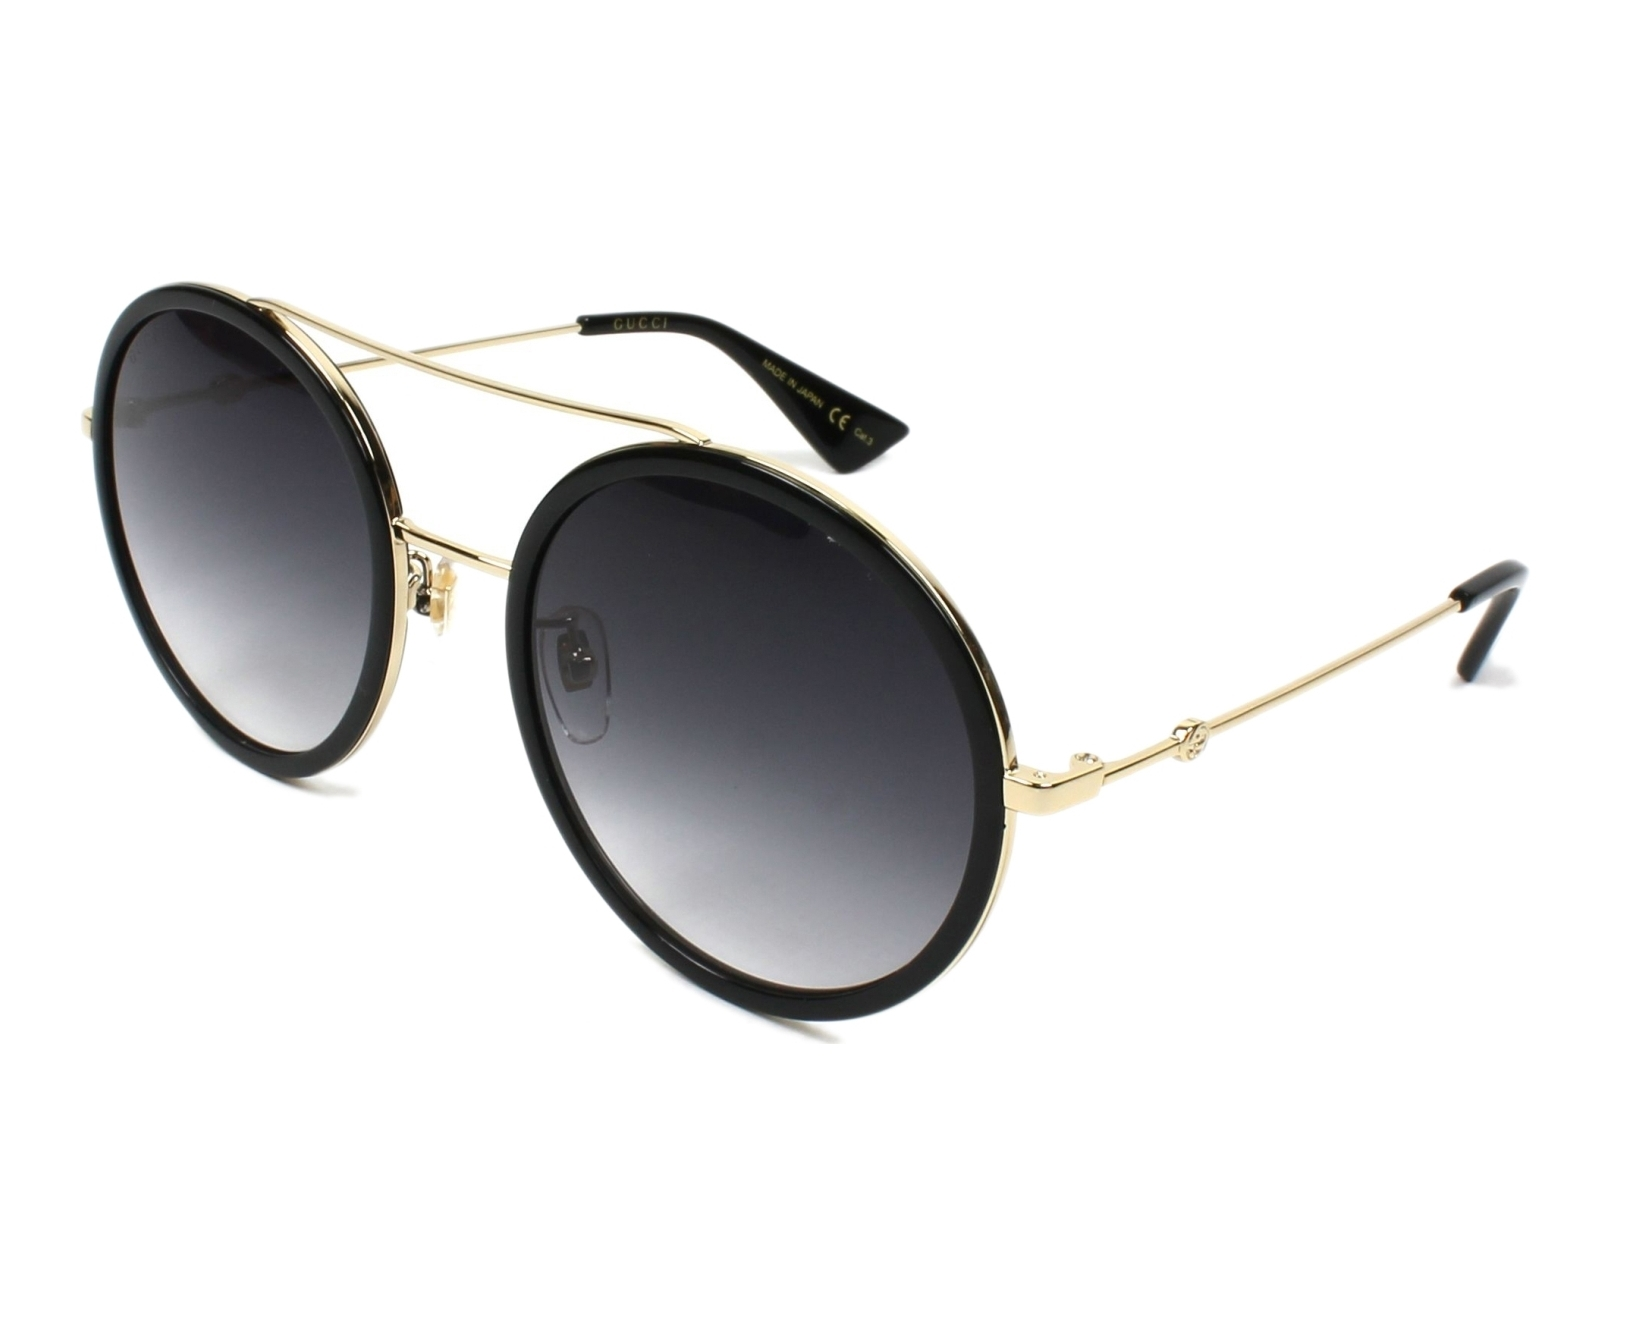 6a92b44c10 Gucci - Buy Gucci sunglasses online at low prices